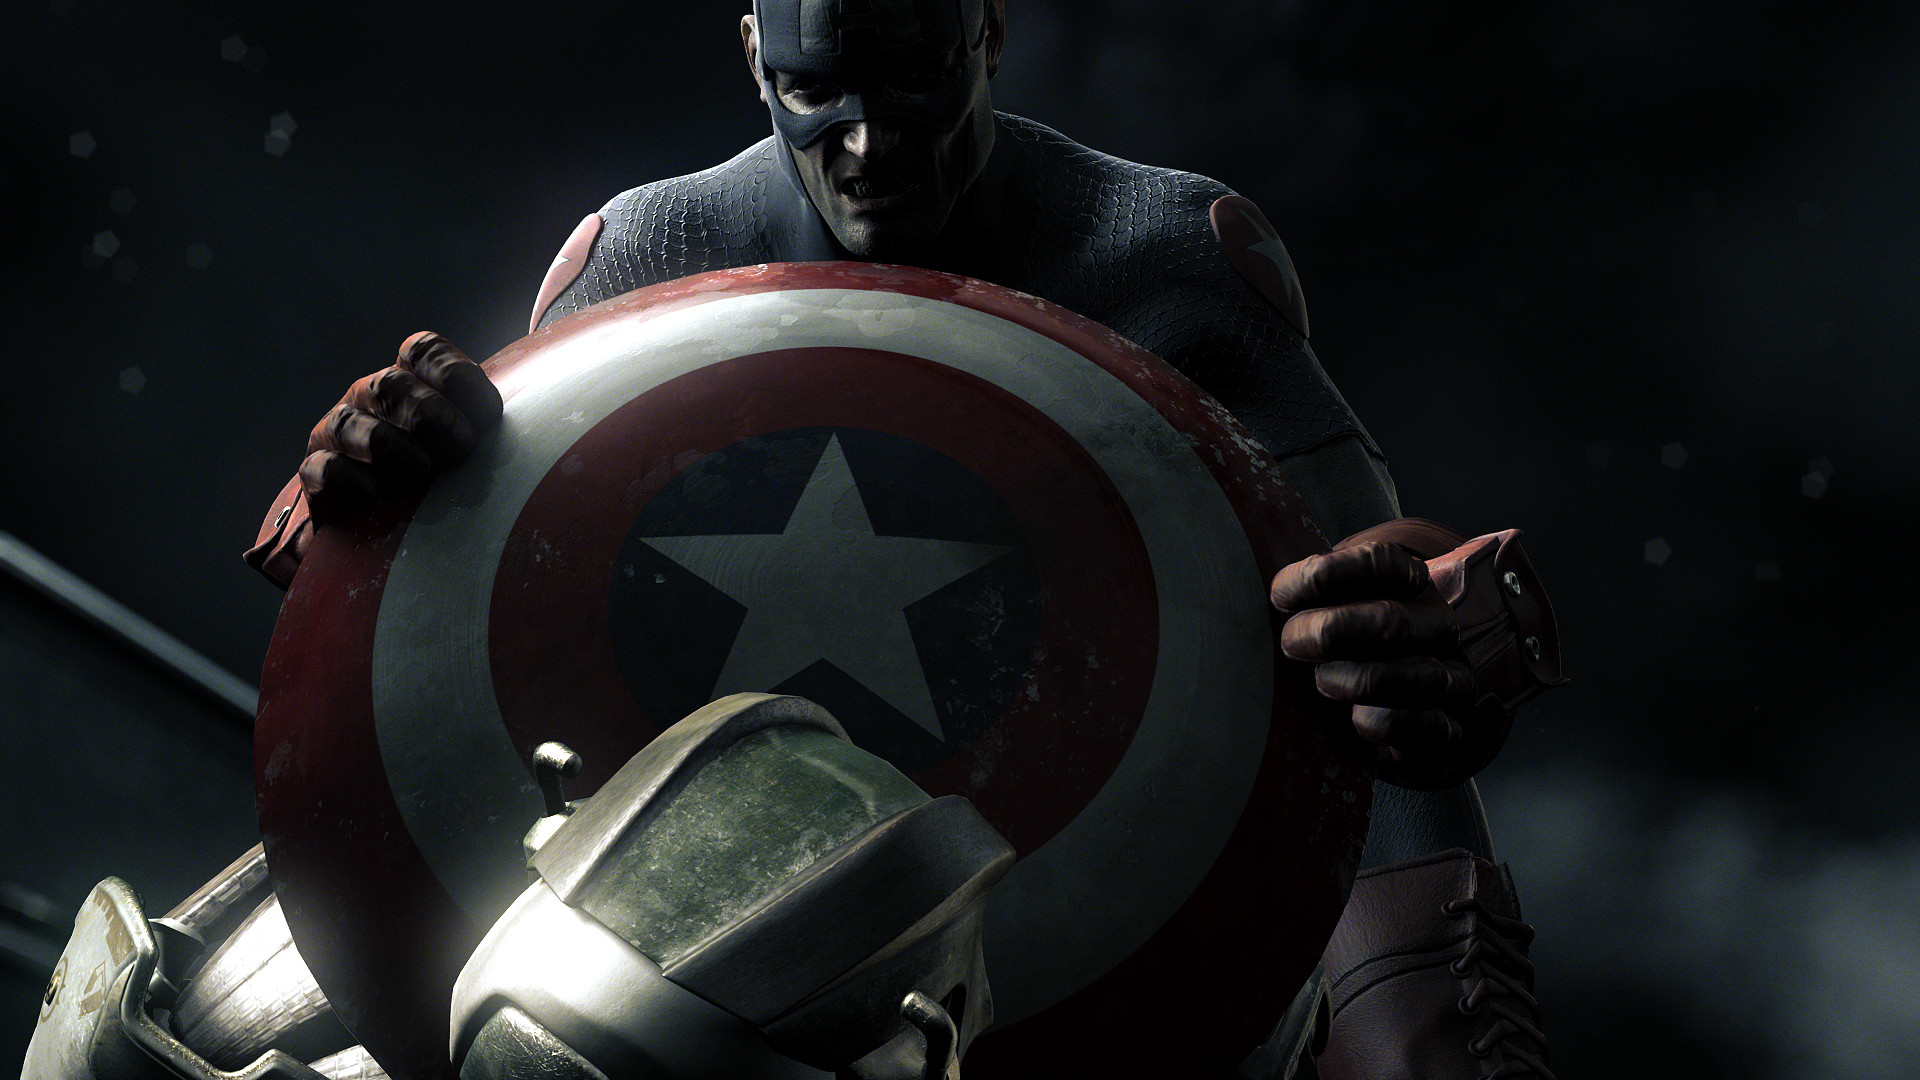 … marvel wallpapers 1920 1080 81 wallpapers hd wallpapers …